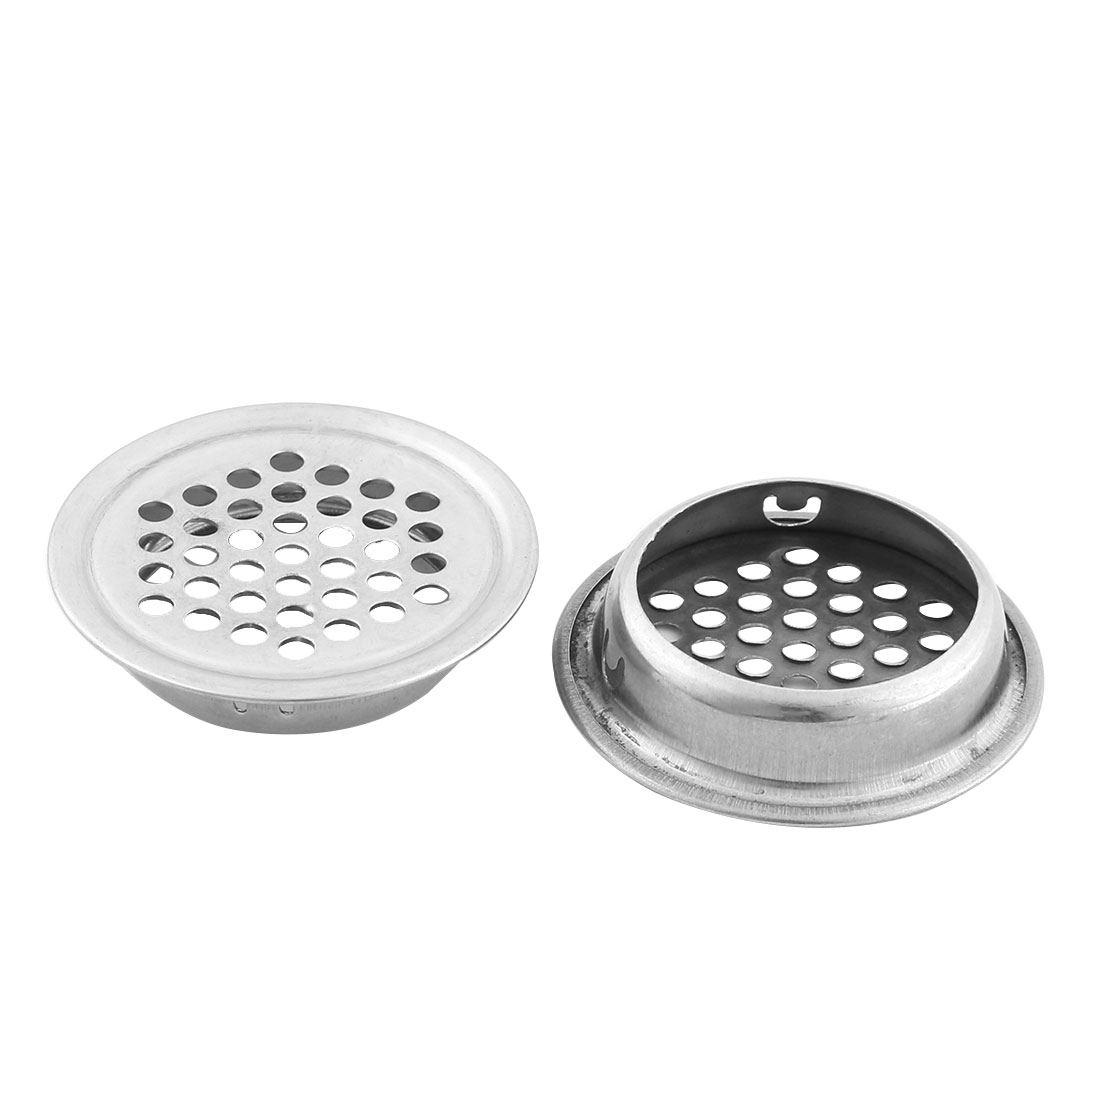 2 Pcs 35mm Diameter Hardware Stainless Steel Round Air Vent Louver